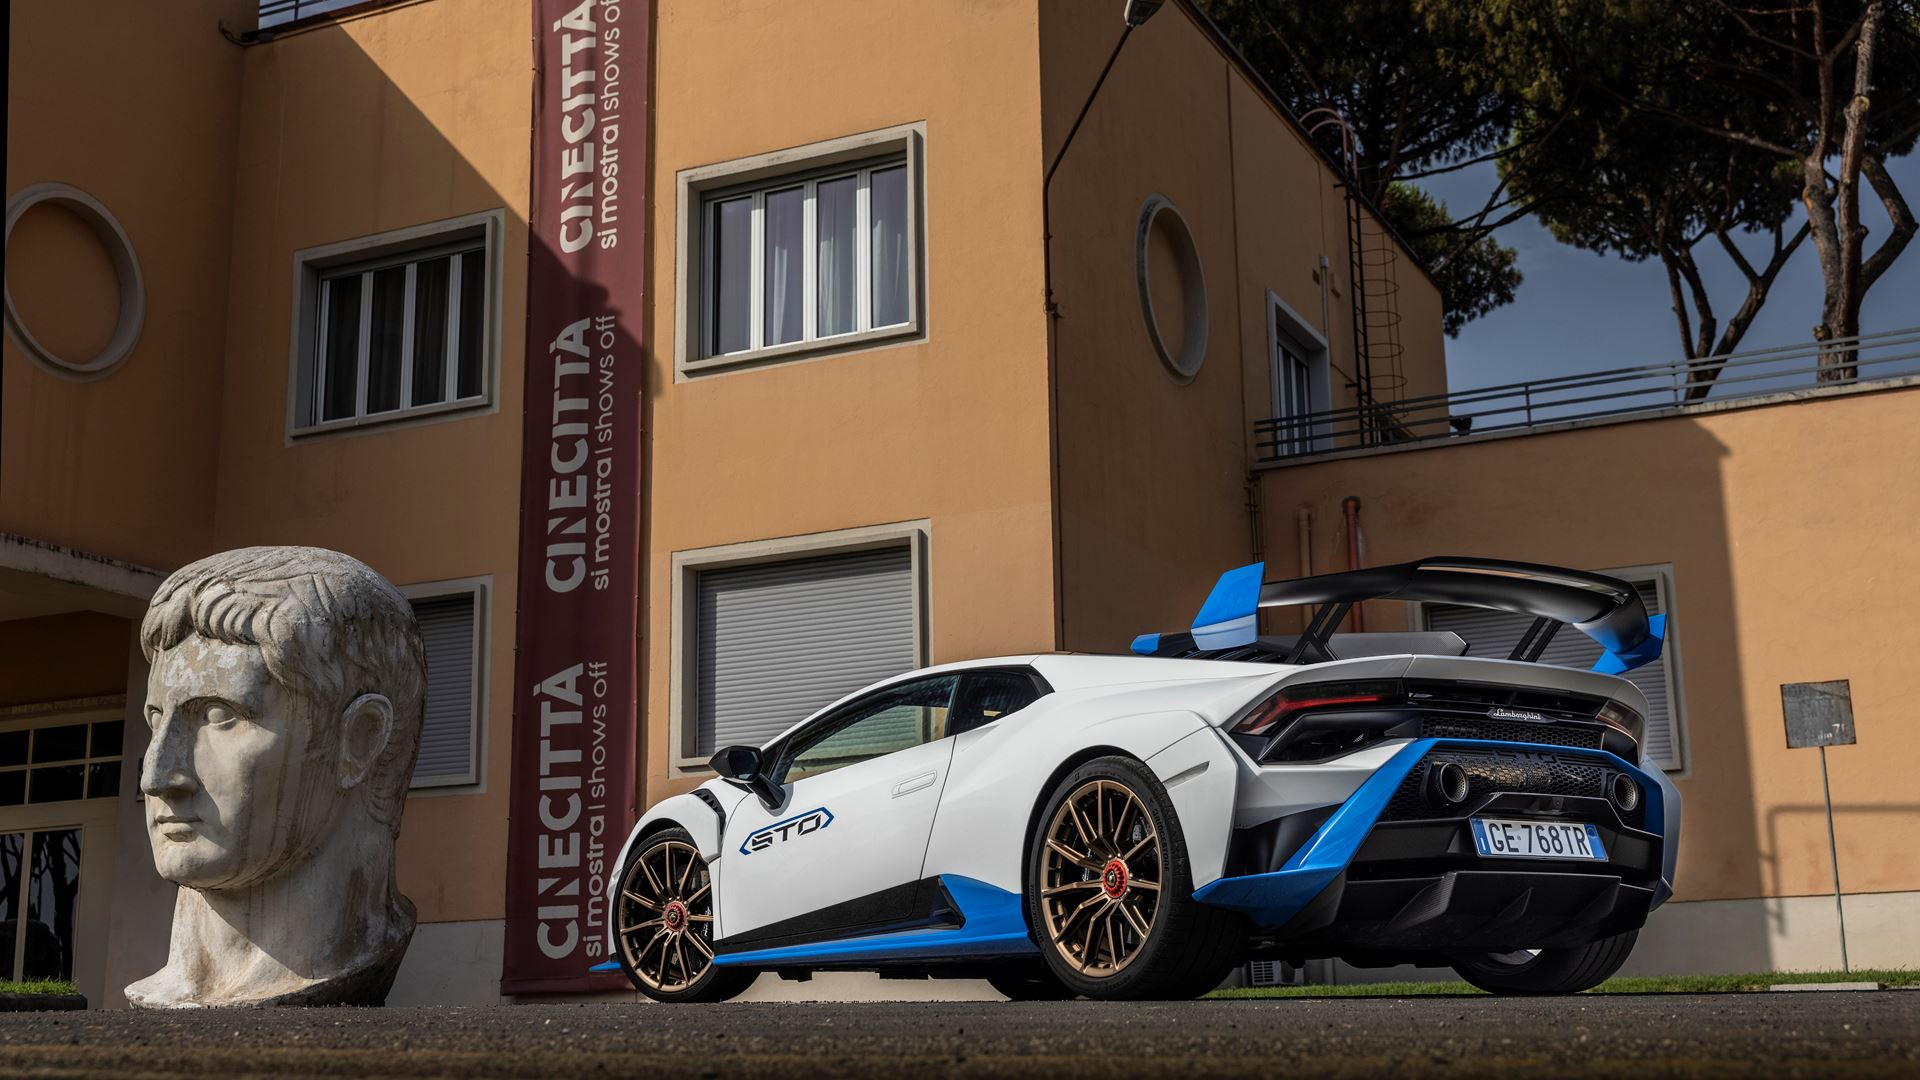 Lamborghini Huracán STO finally unleashed First test-drives in Rome and at the Autodromo Piero Taruffi in Vallelunga - Image 3